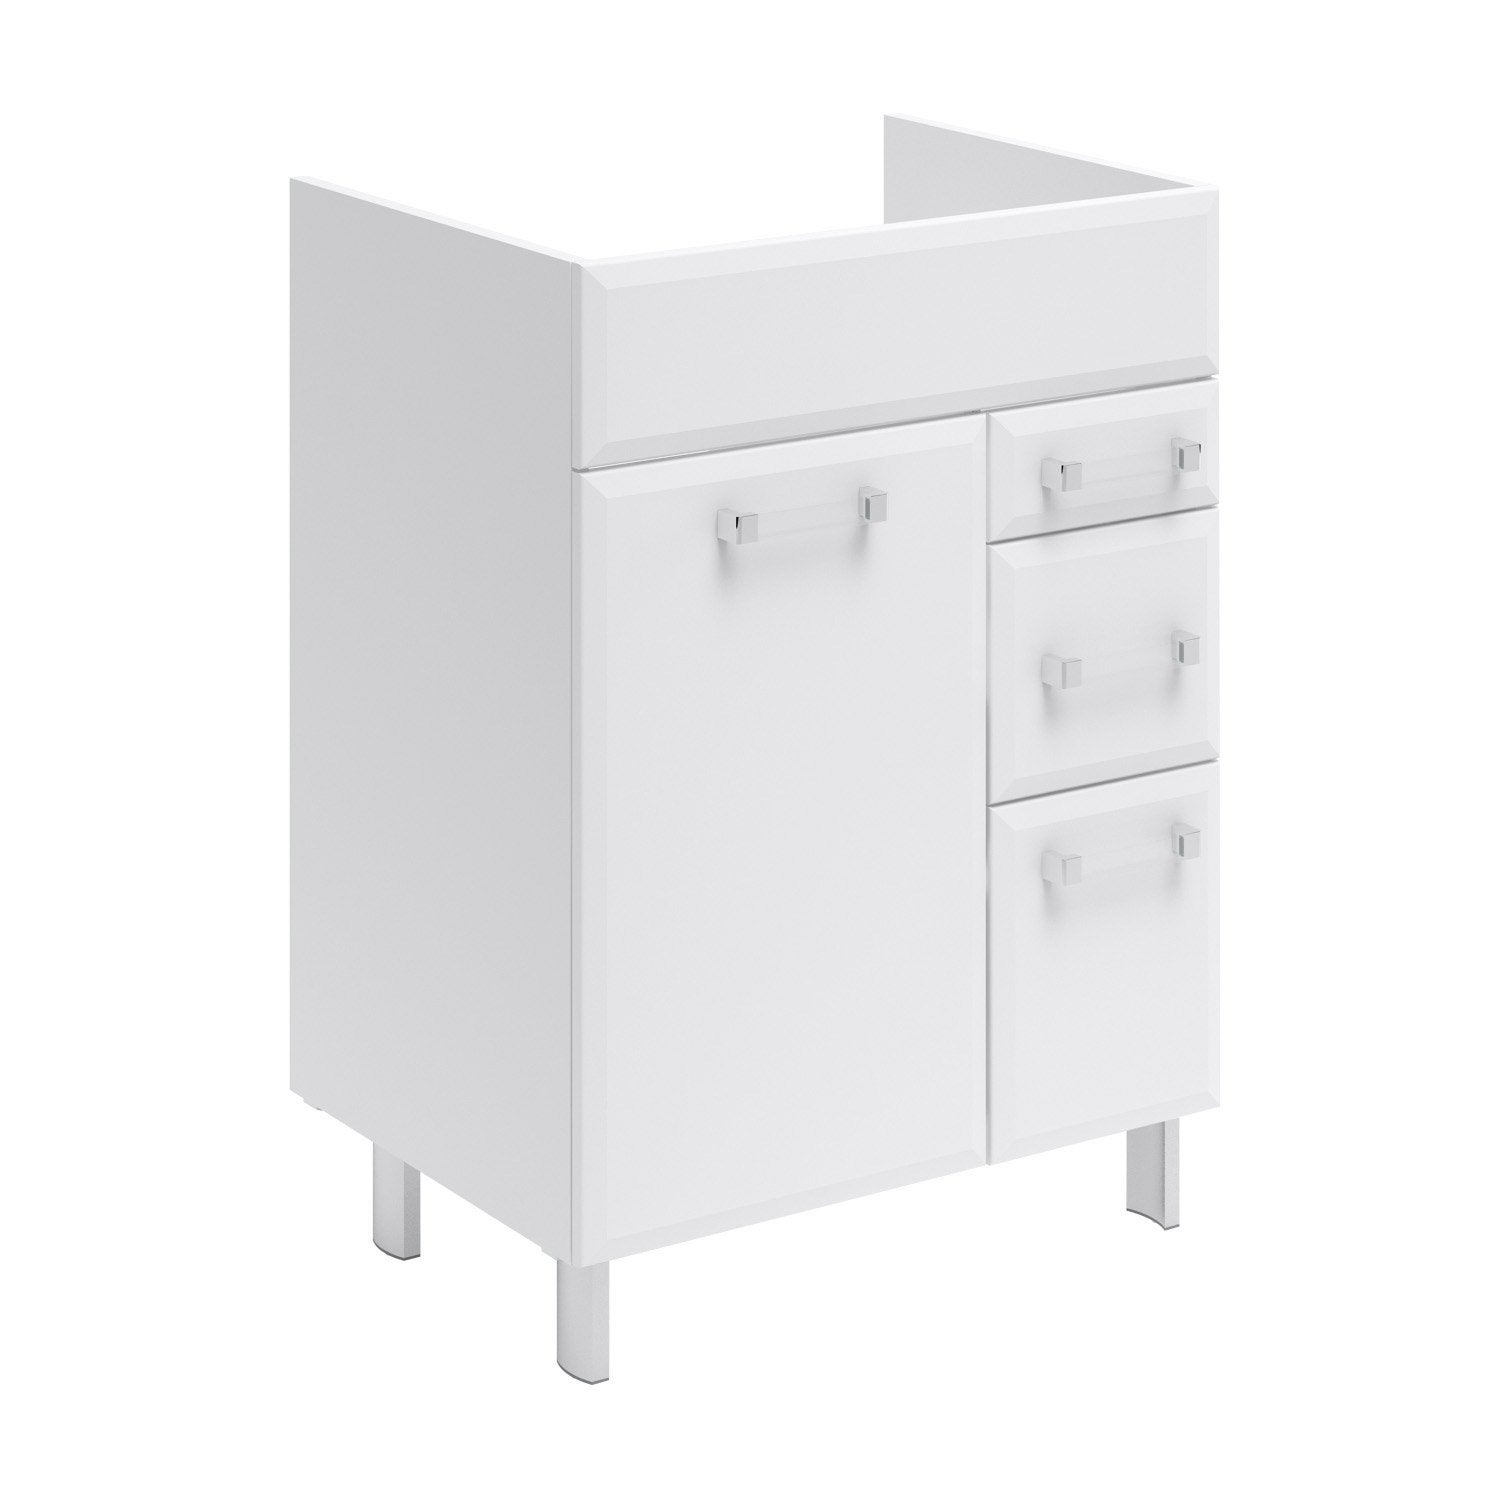 Meuble sous vasque opale blanc l60xh84xp45 2 cm 1 porte for Meuble vasque 70 cm leroy merlin